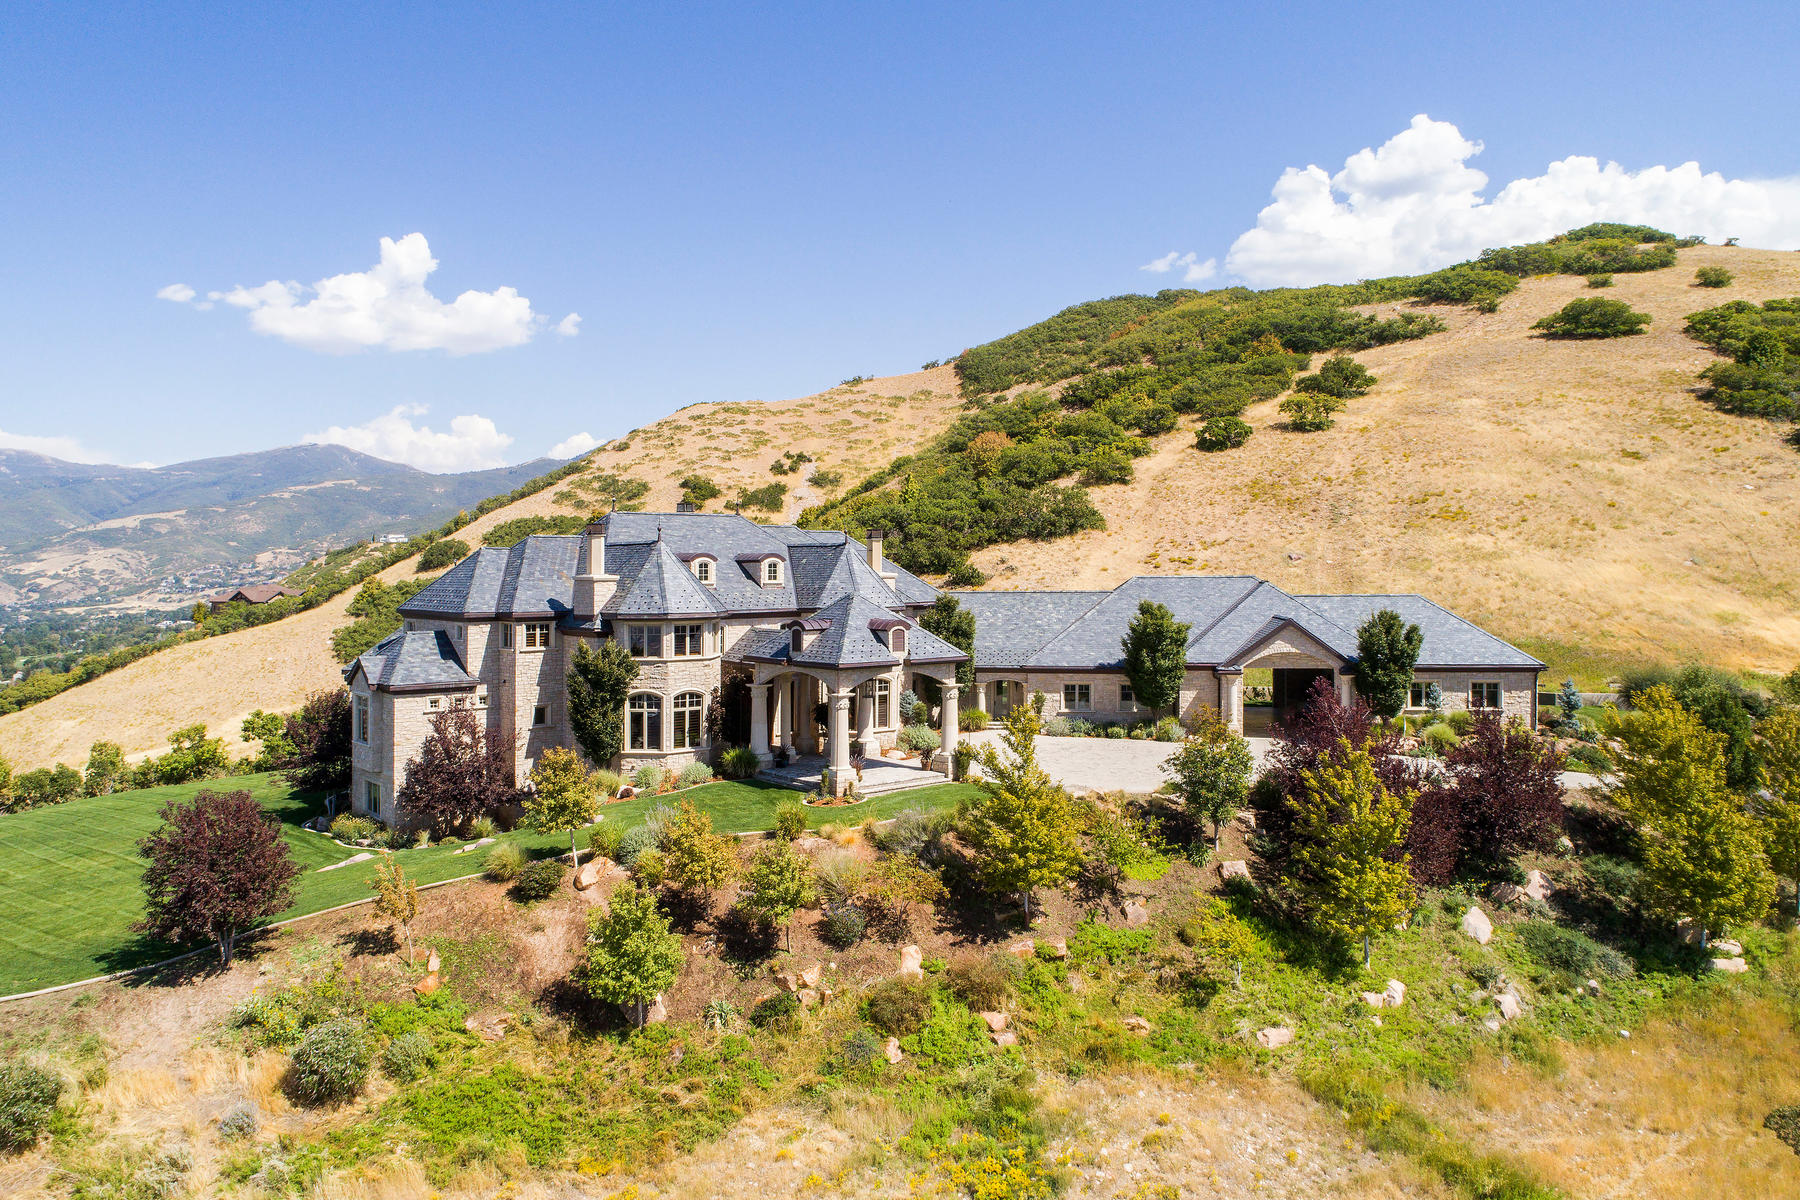 Single Family Homes for Active at Magnificent Hilltop Chateau 4101 S Hidden Ridge Cir Bountiful, Utah 84010 United States